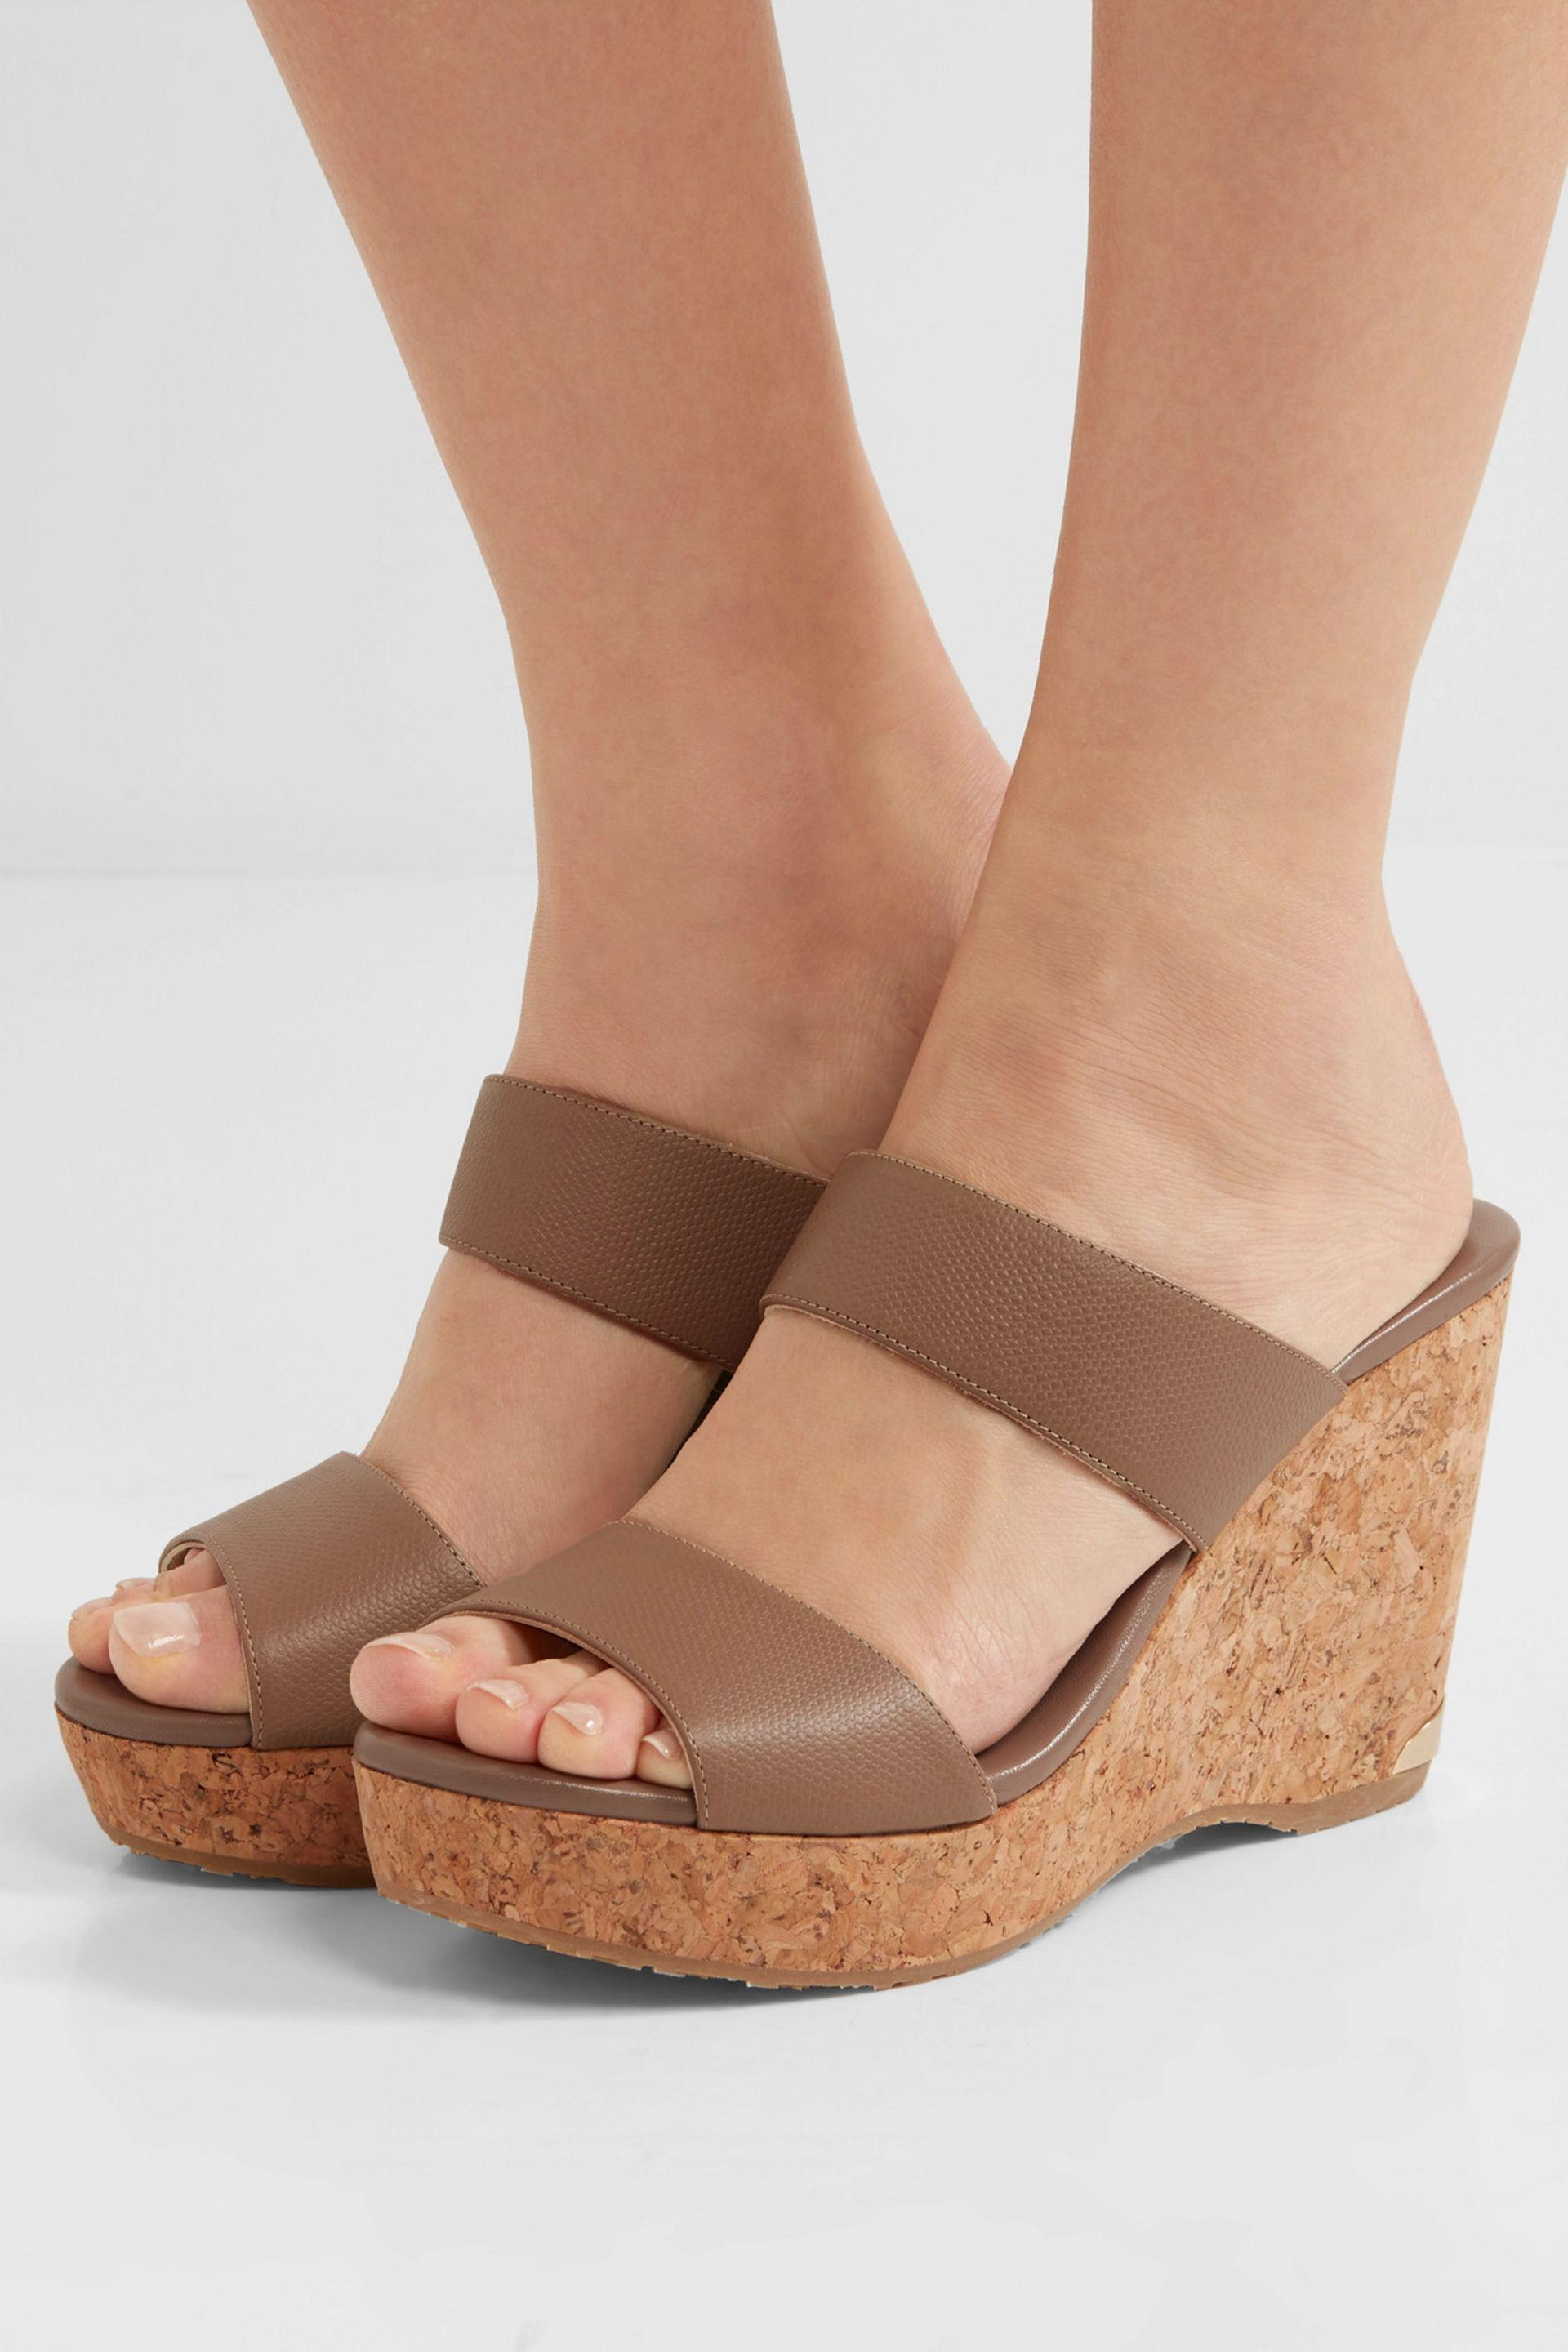 3e59805c16c9 Jimmy Choo Parker Textured-leather Wedge Sandals - Lyst